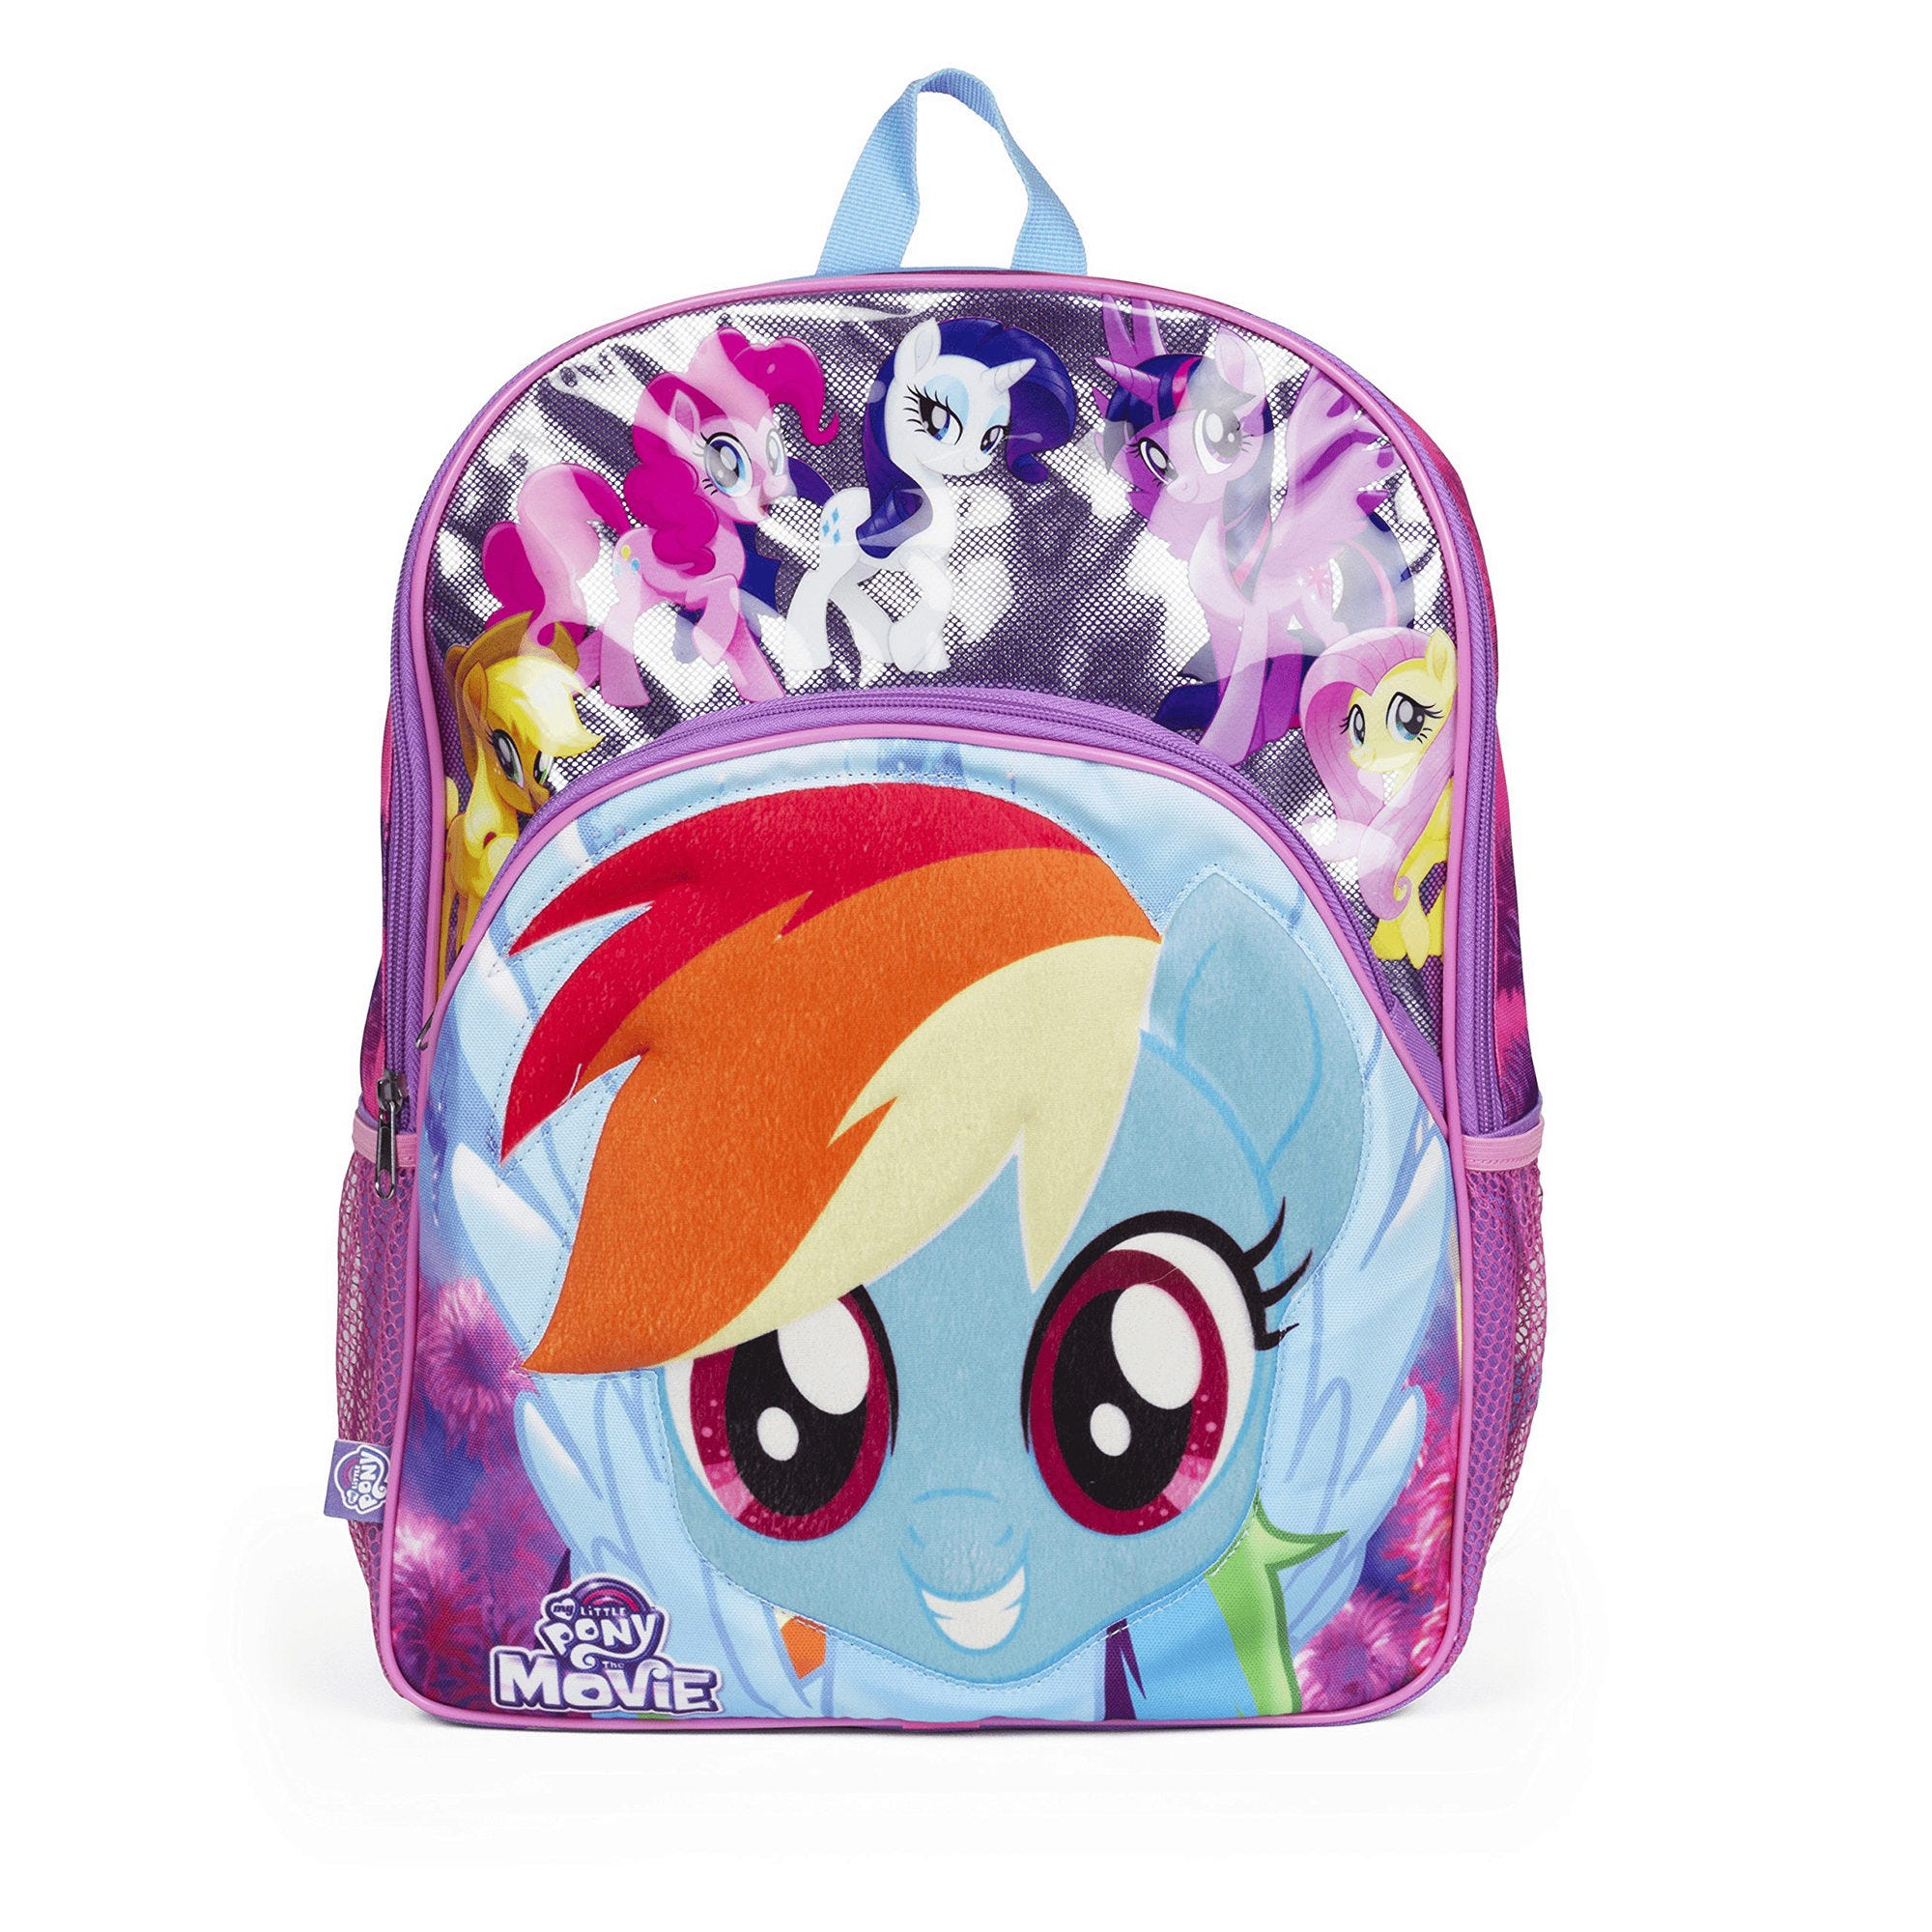 My Little Pony Backpack with 3D Graphic- Qty 4